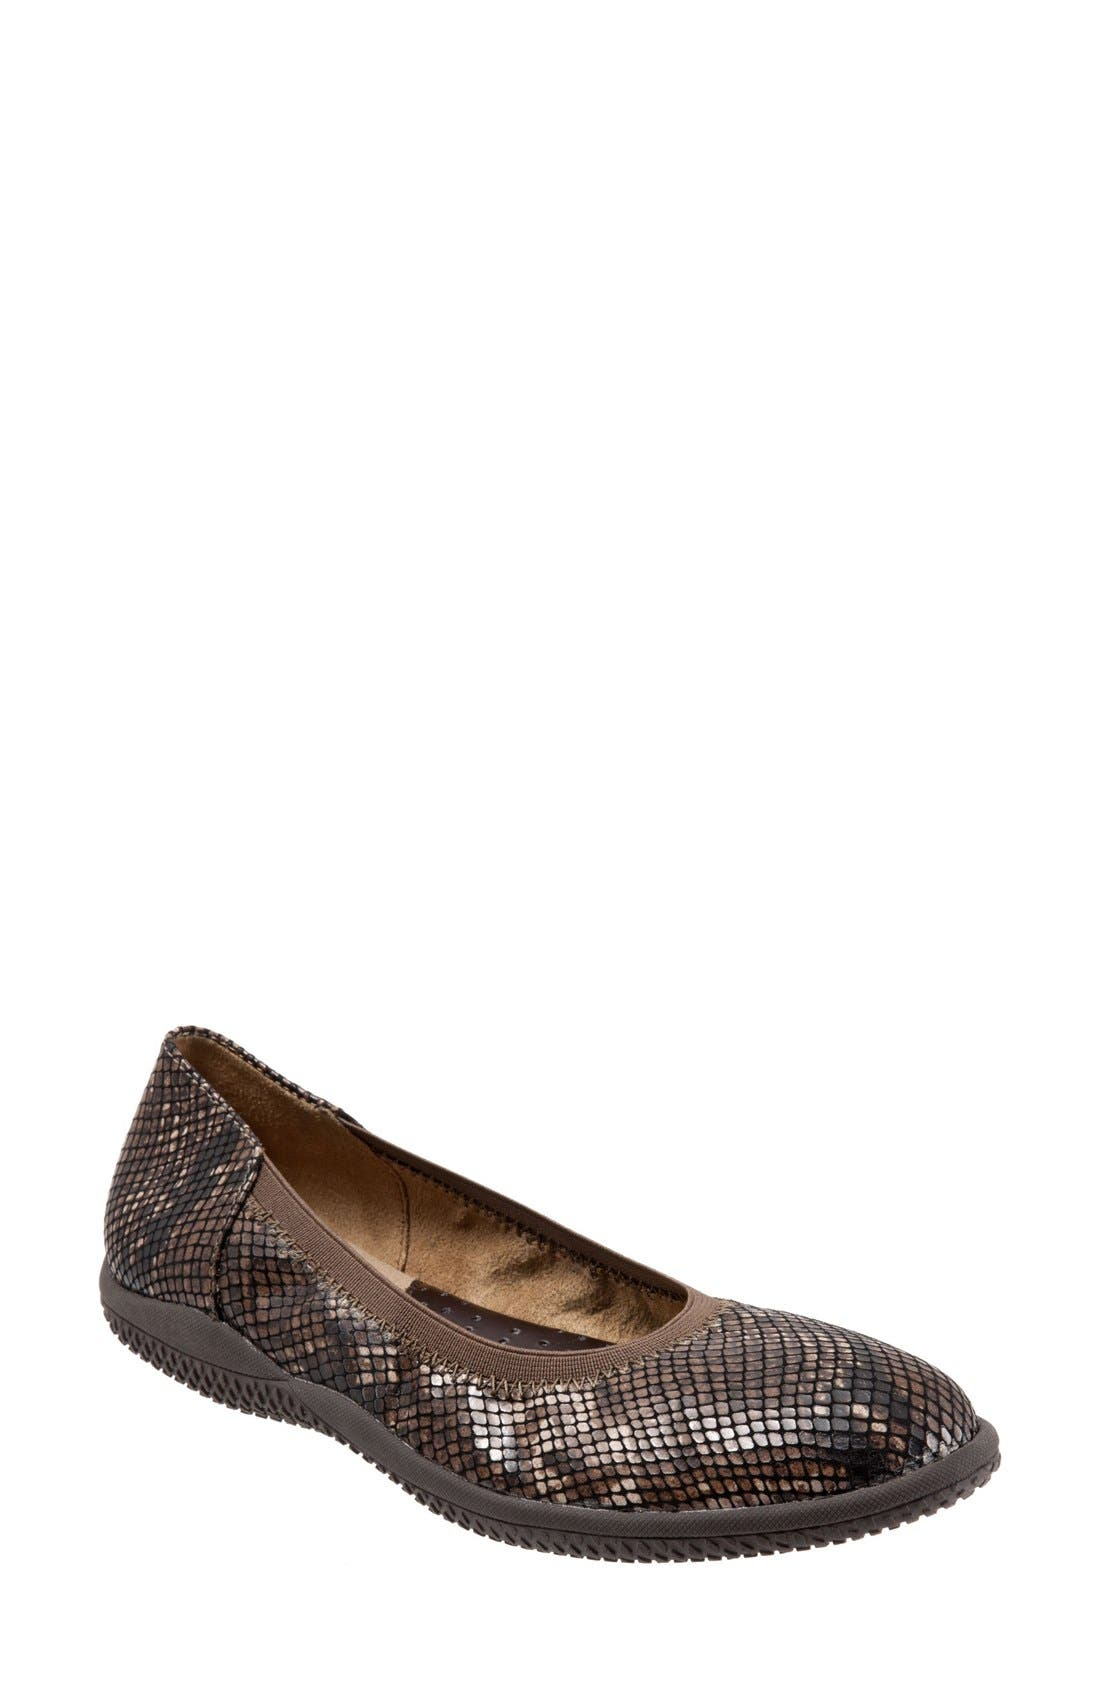 SOFTWALK<SUP>®</SUP>, 'Hampshire' Dot Perforated Ballet Flat, Main thumbnail 1, color, BROWN PYTHON PRINT LEATHER